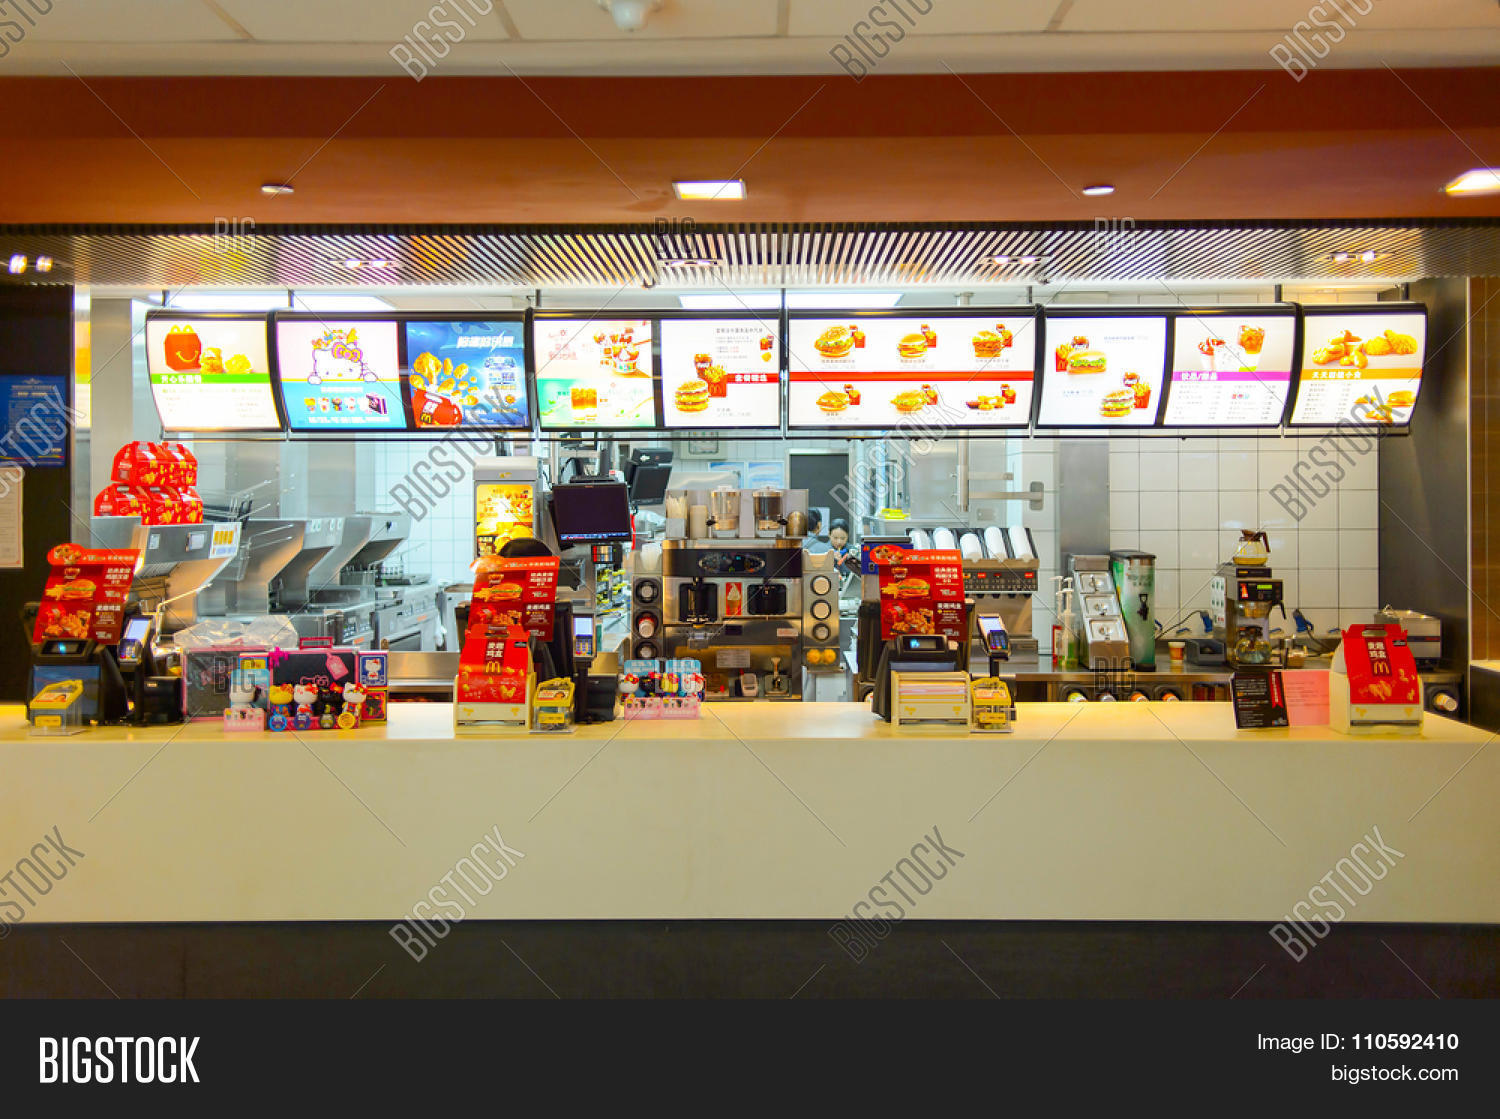 1 mcdonald s interiors related keywords amp suggestions 1 mcdonalds interior stock photos amp mcdonalds interior stock